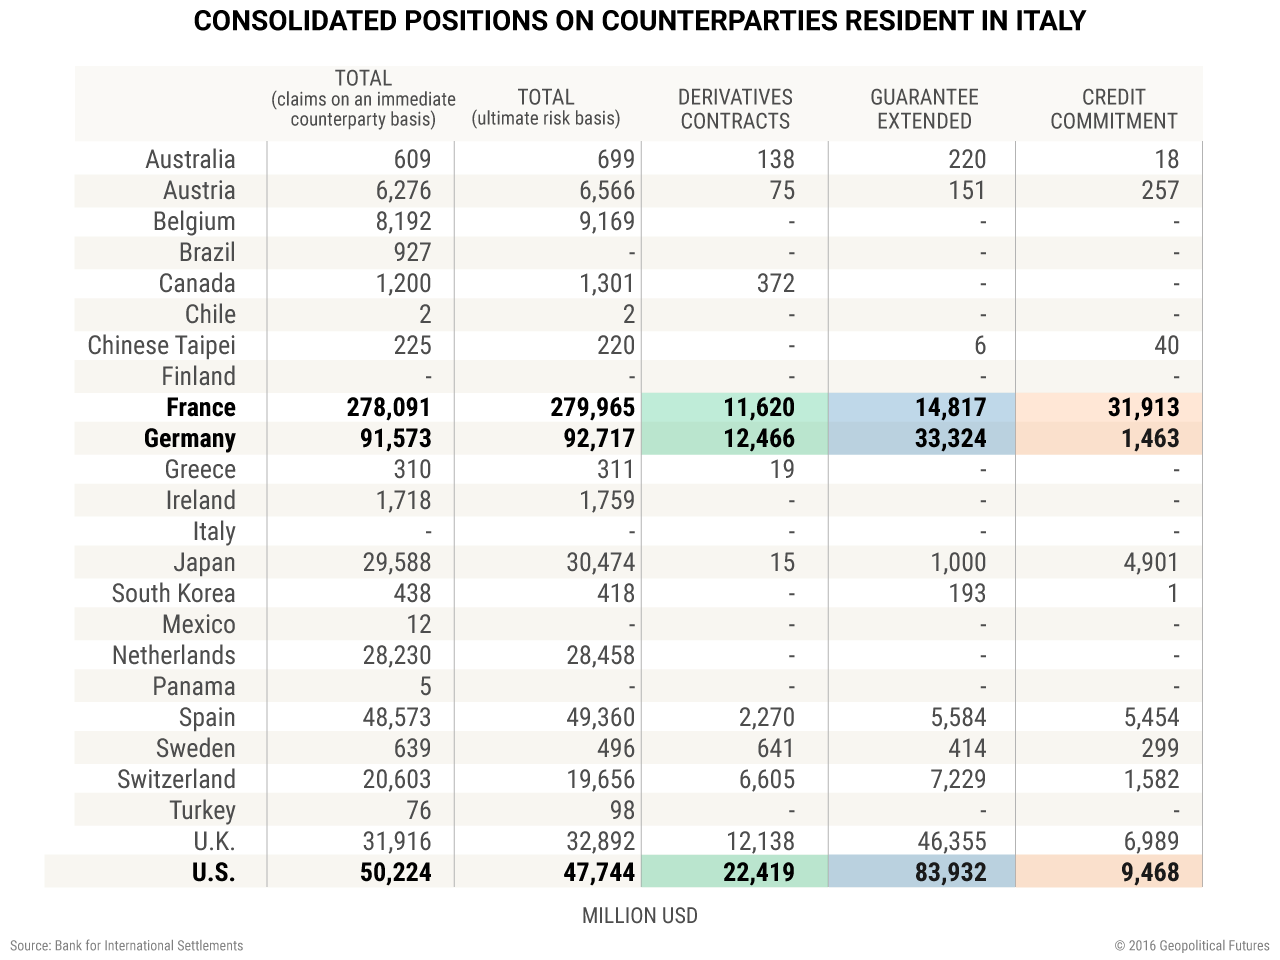 consolidated-positions-on-counterparties-resident-in-italy-v2